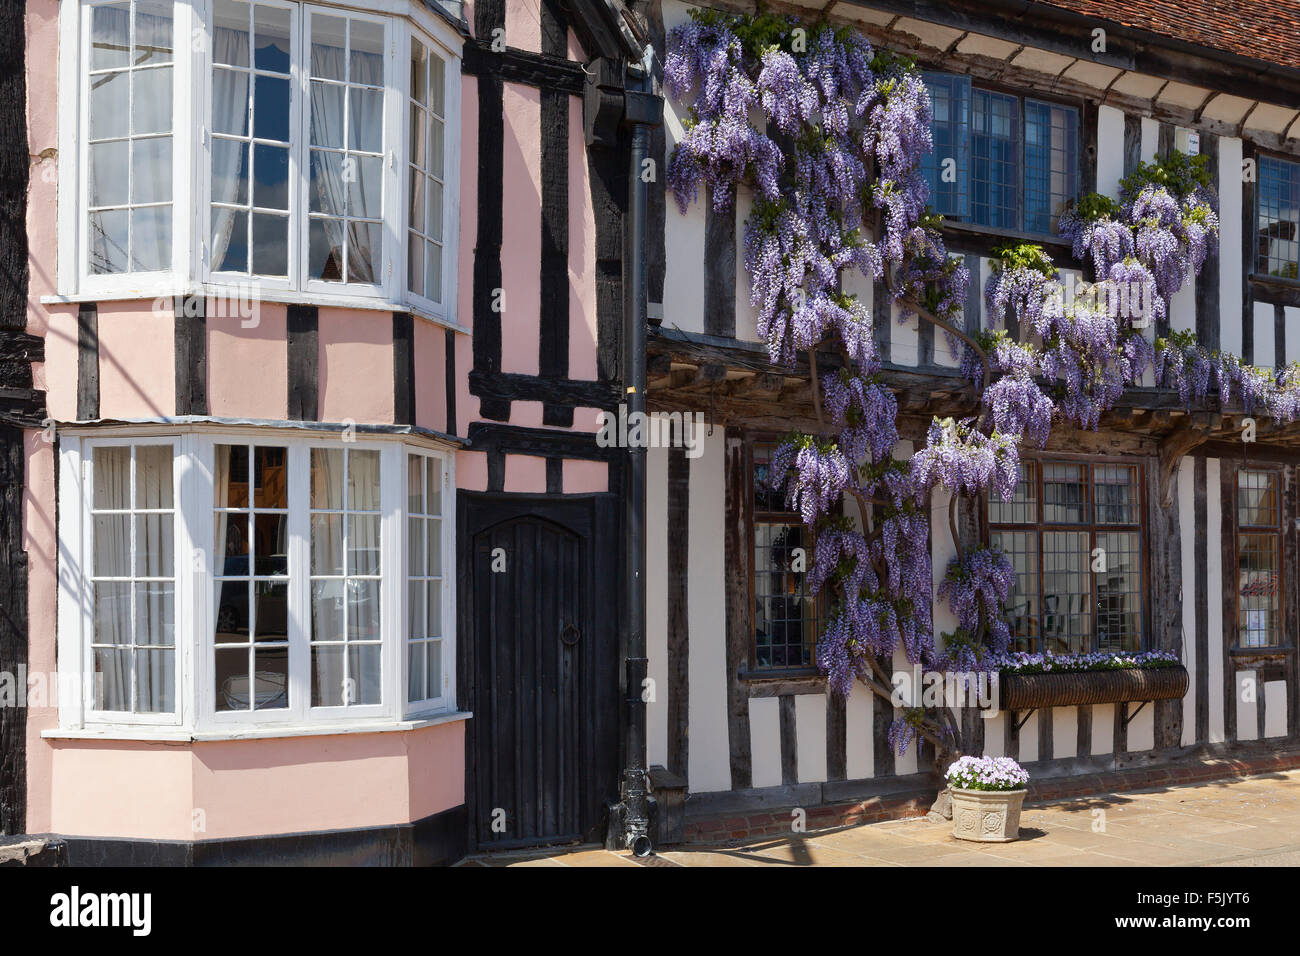 Half-timbered buildings in Lavenham, Suffolk - Stock Image